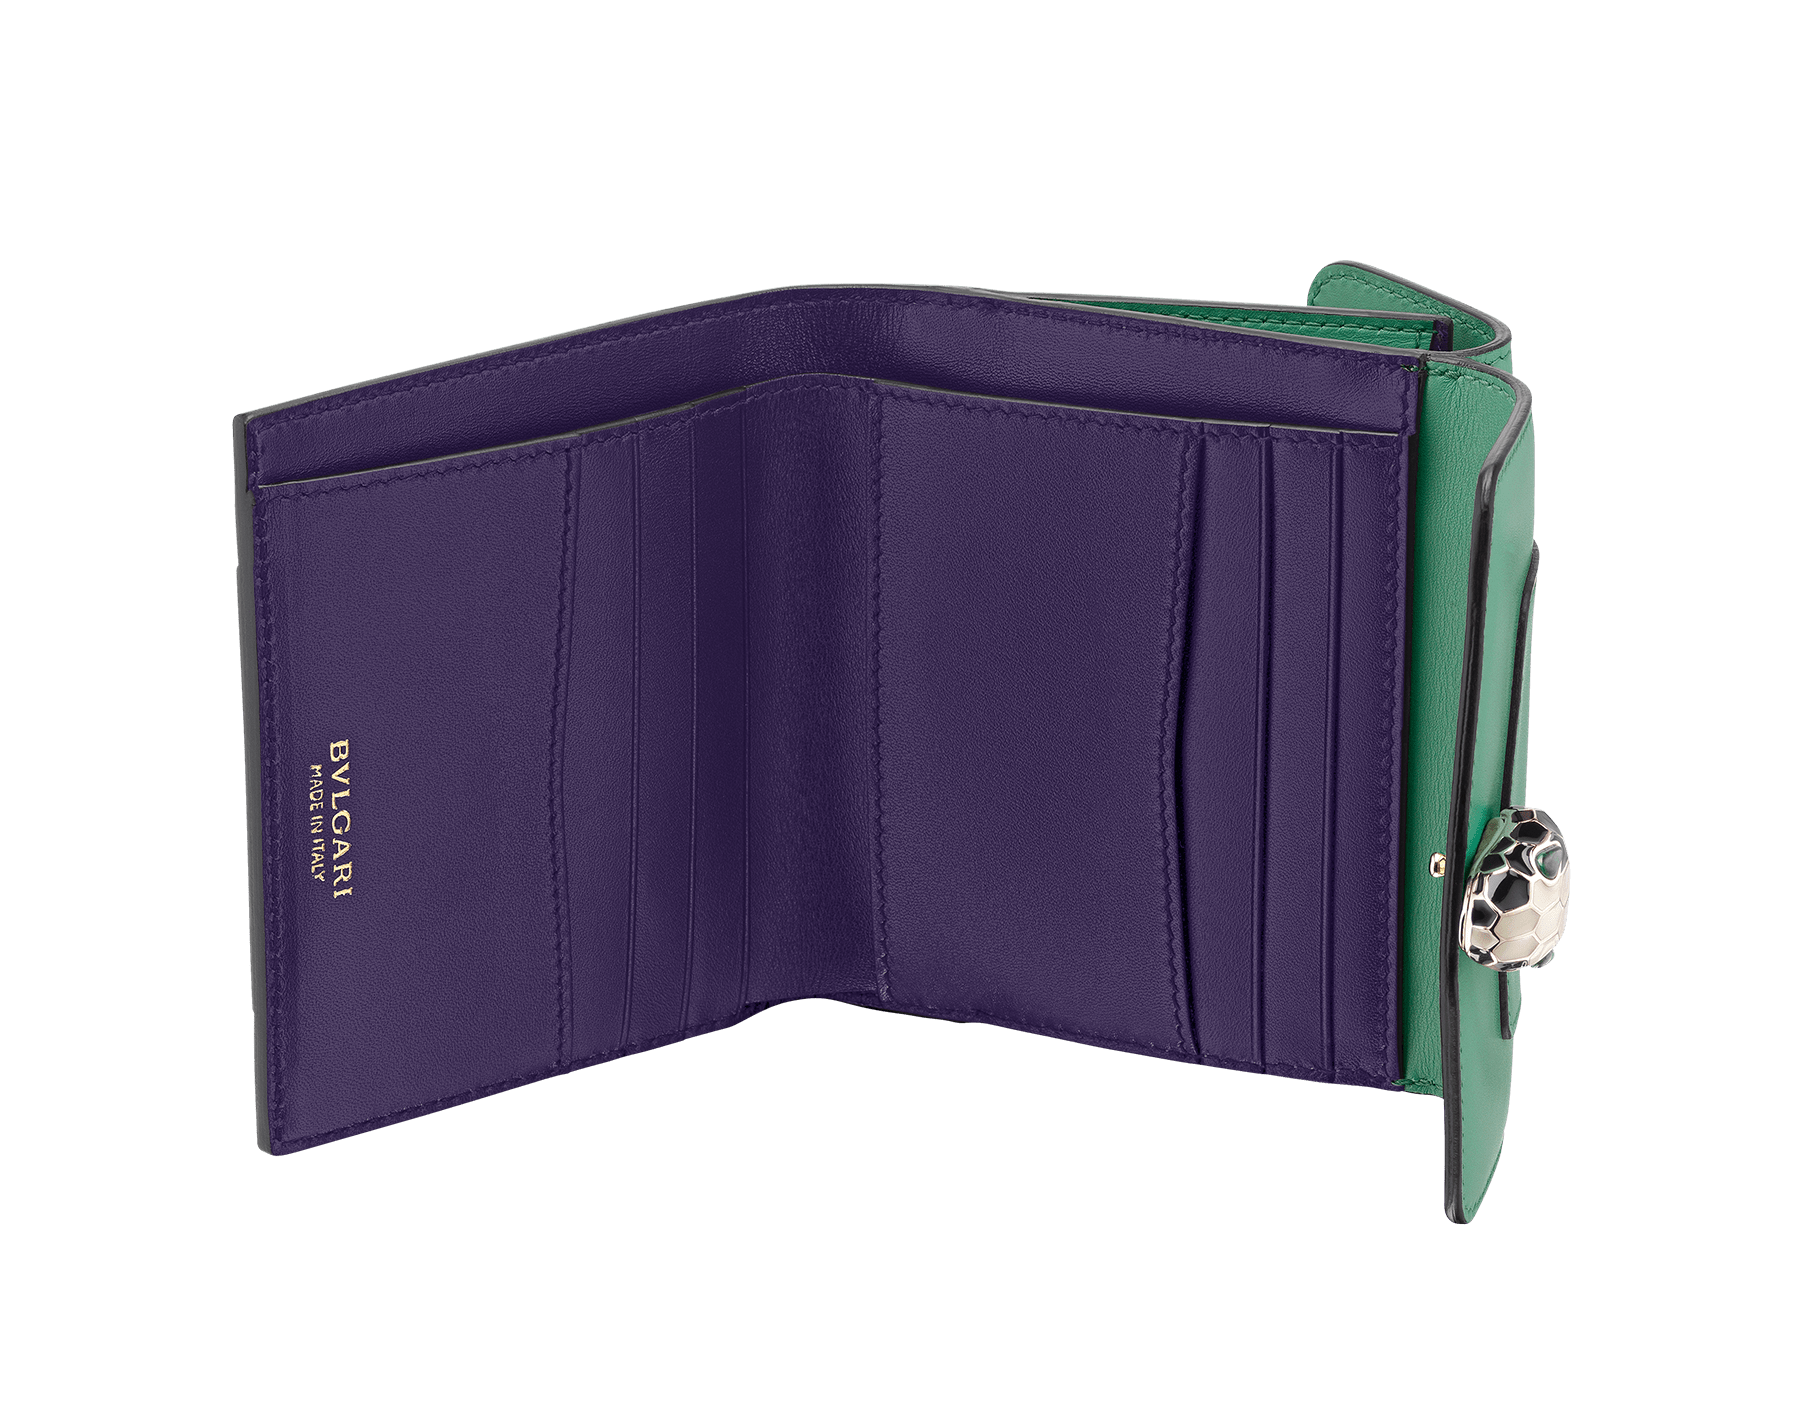 """Serpenti Forever"" square compact wallet in Lavander Amethyst lilac and Reef Coral red calf leather. Iconic snakehead stud closure in black and white agate enamel, with green malachite eyes. SEA-WLT-COMPACT-3Fb image 2"